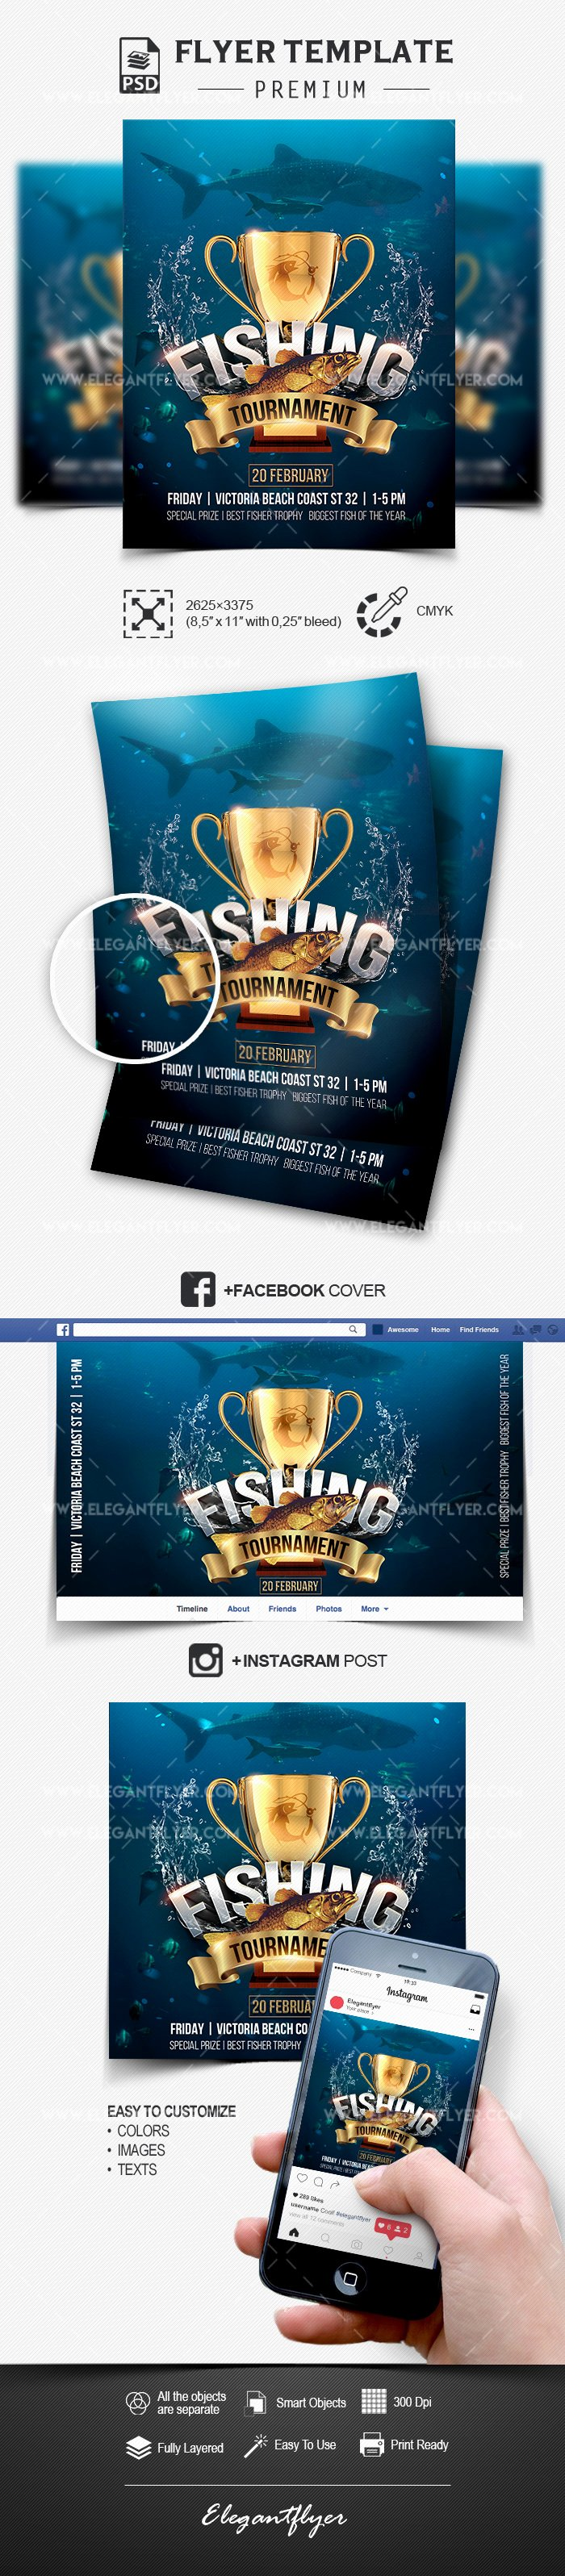 Facebook Post Template Psd Unique Fishing tournament – Psd Flyer Template Cover